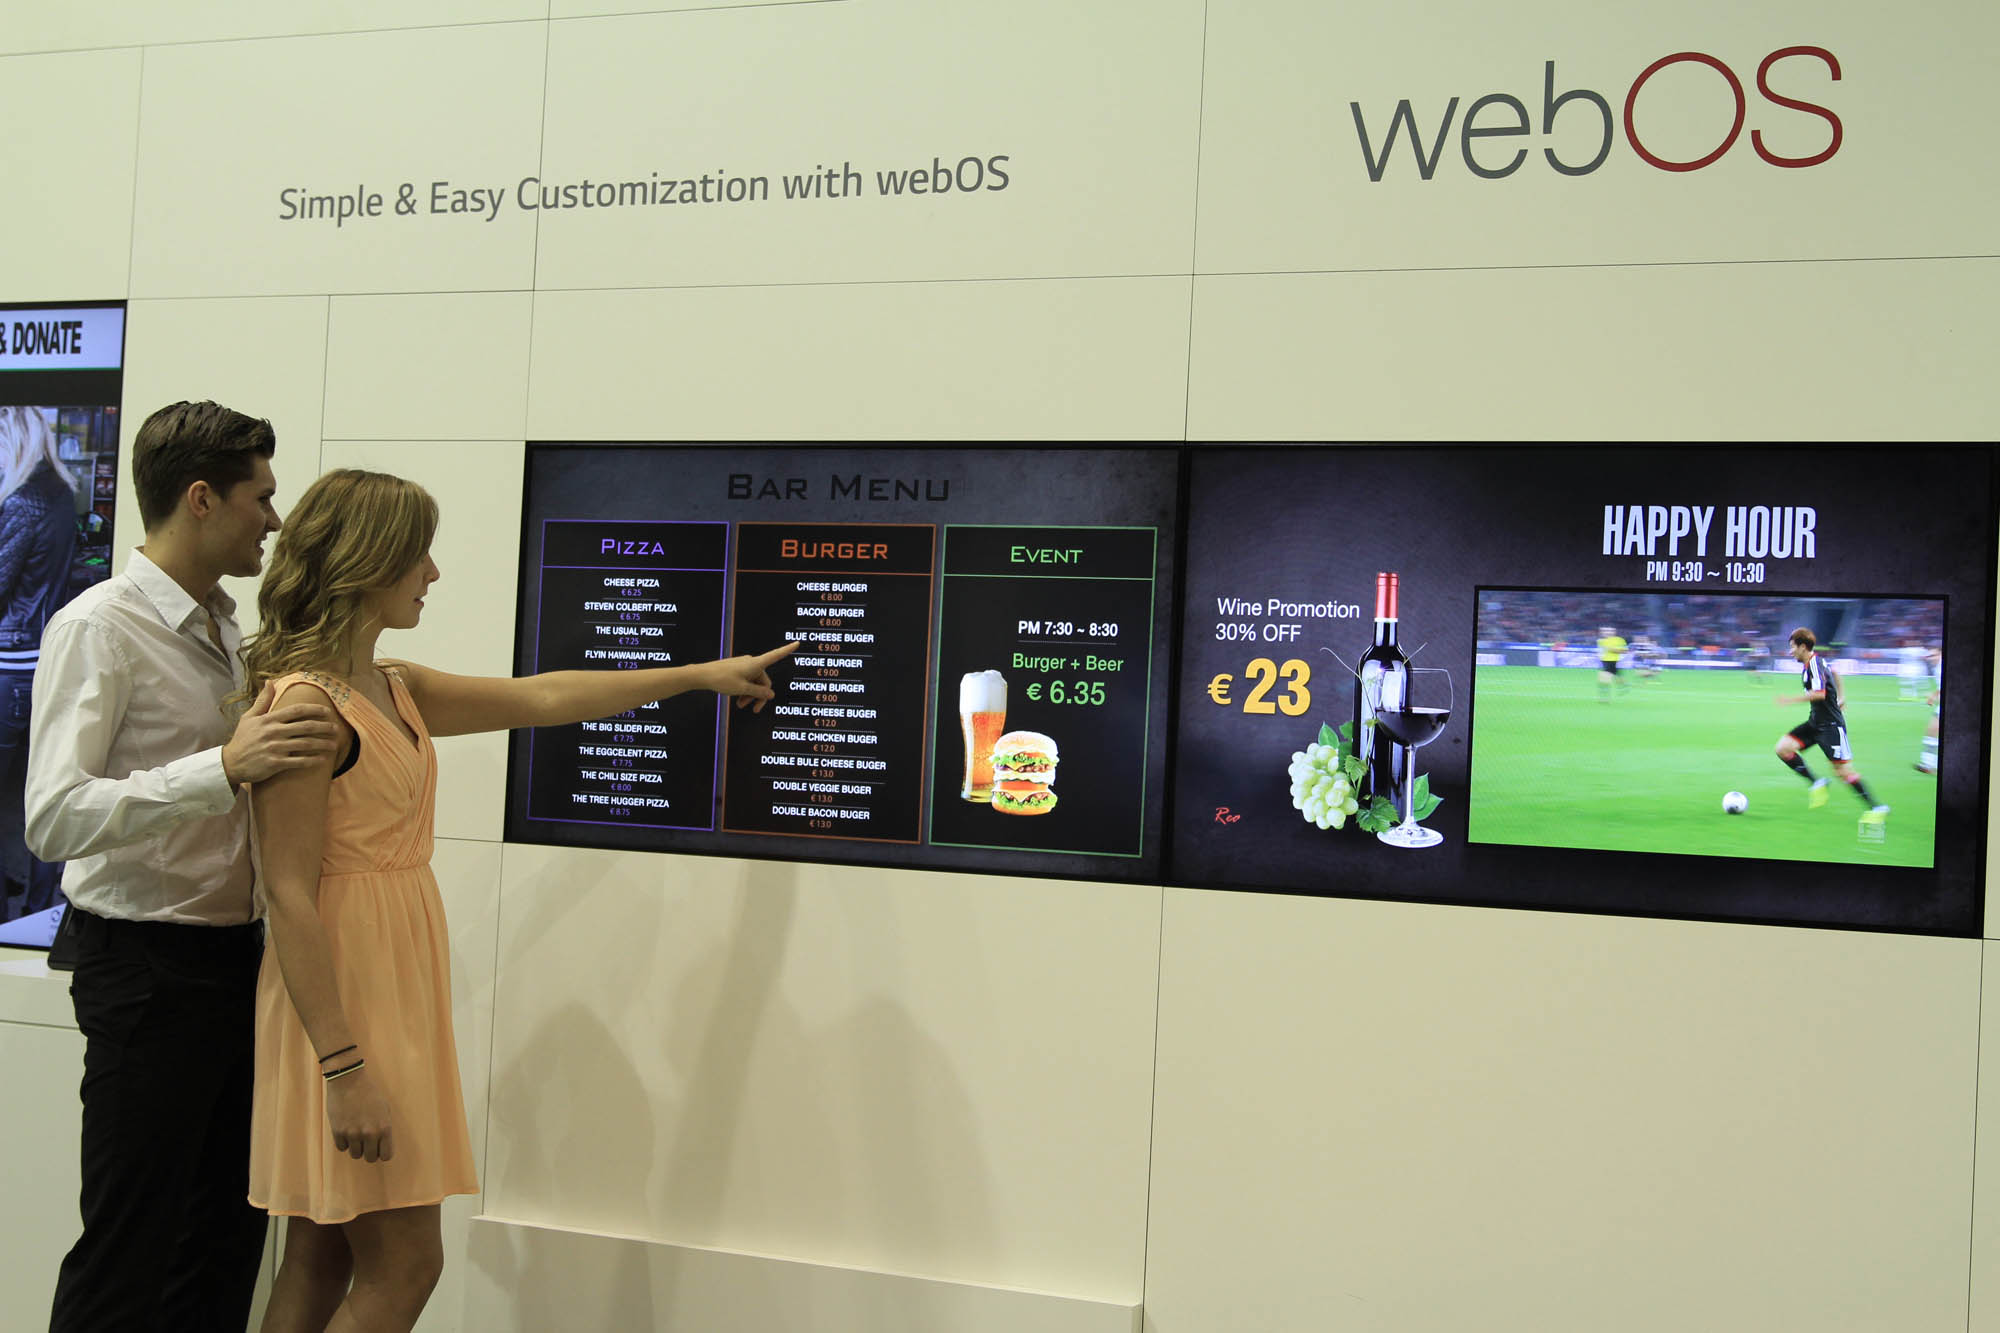 lg-smart-platform-signage-with-webos-01_ise-2015.jpg